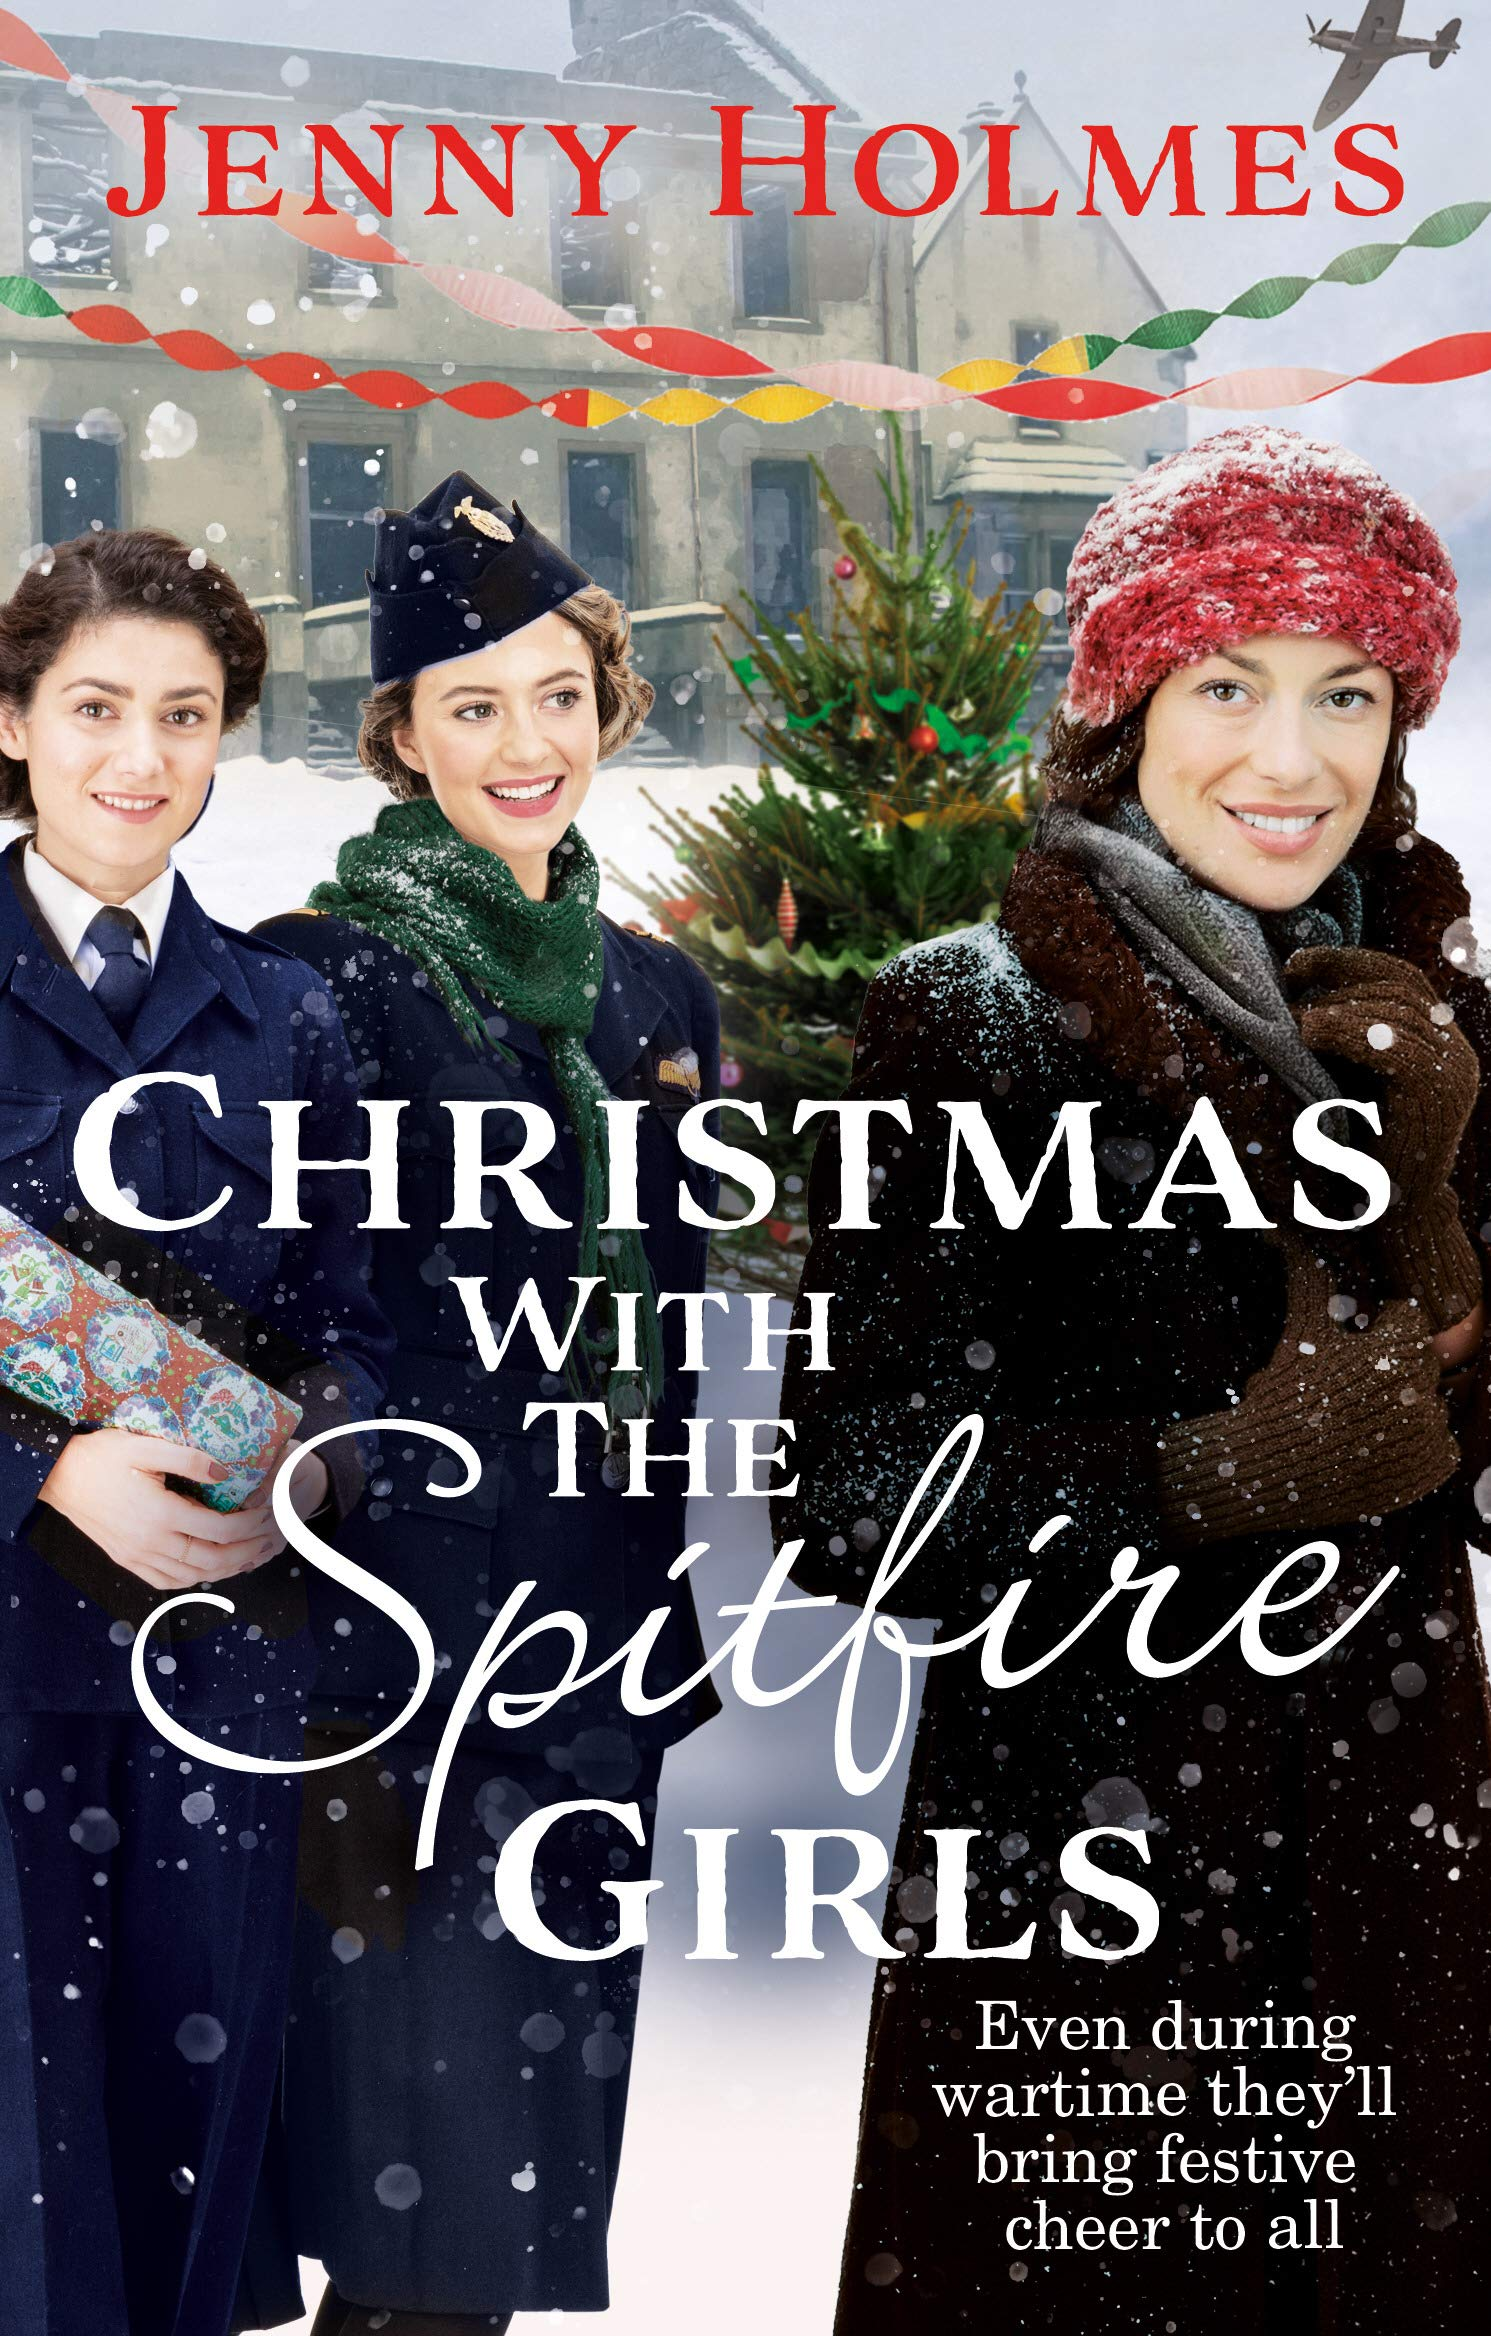 Christmas with the Spitfire Girls: A heartwarming and festive wartime  story: Amazon.co.uk: Holmes, Jenny: 9780552177061: Books